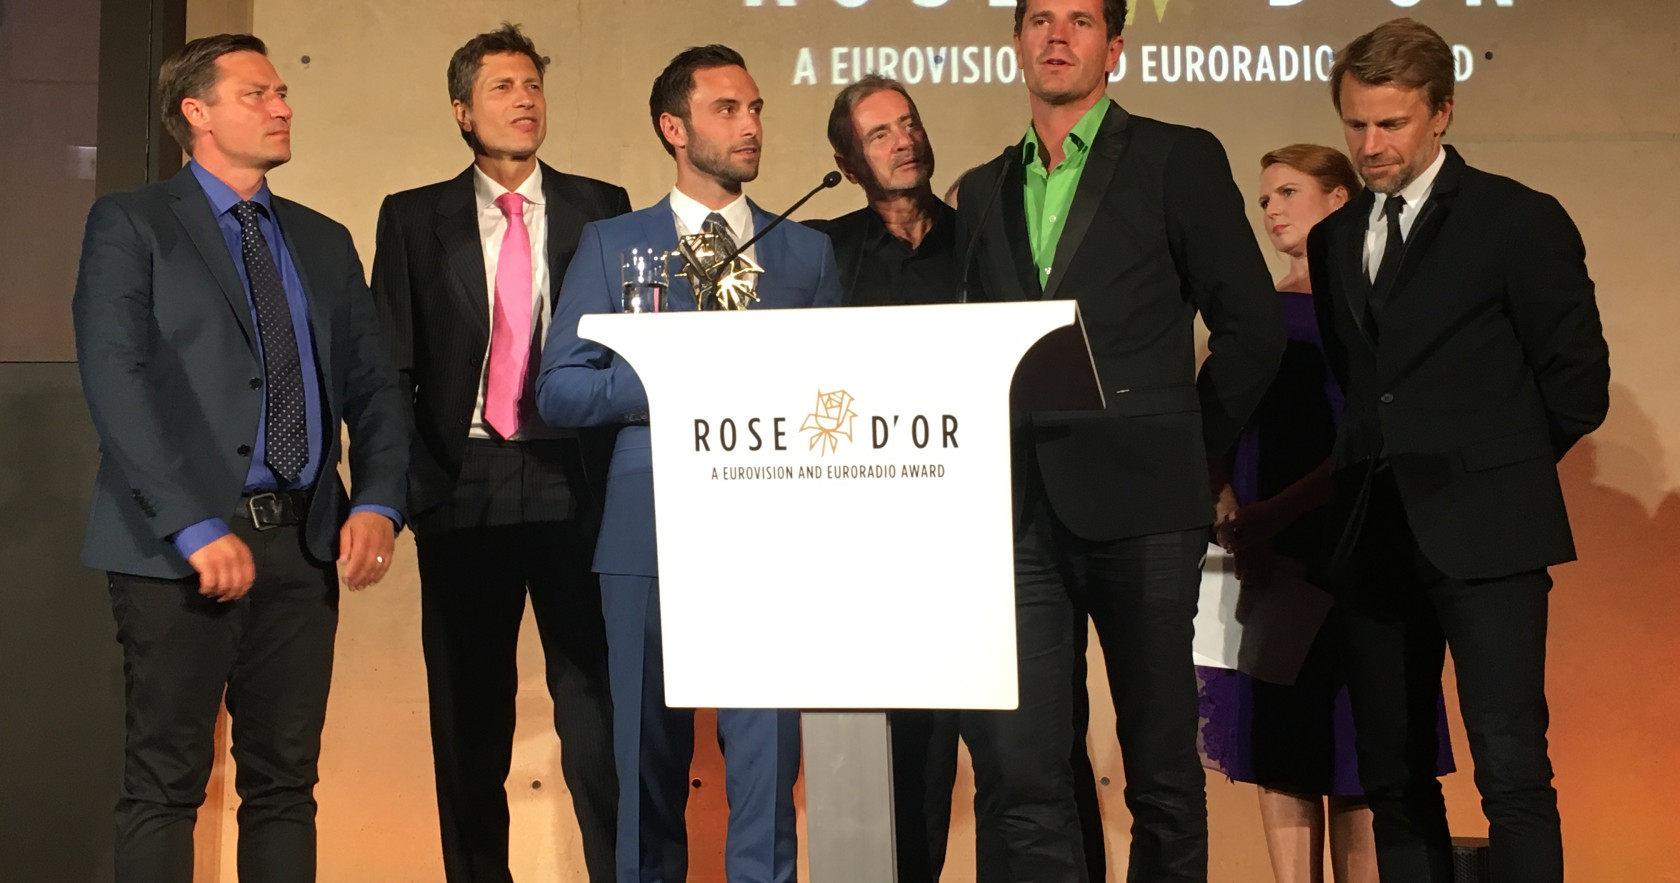 The SVT team collect the award in Berlin, Germany